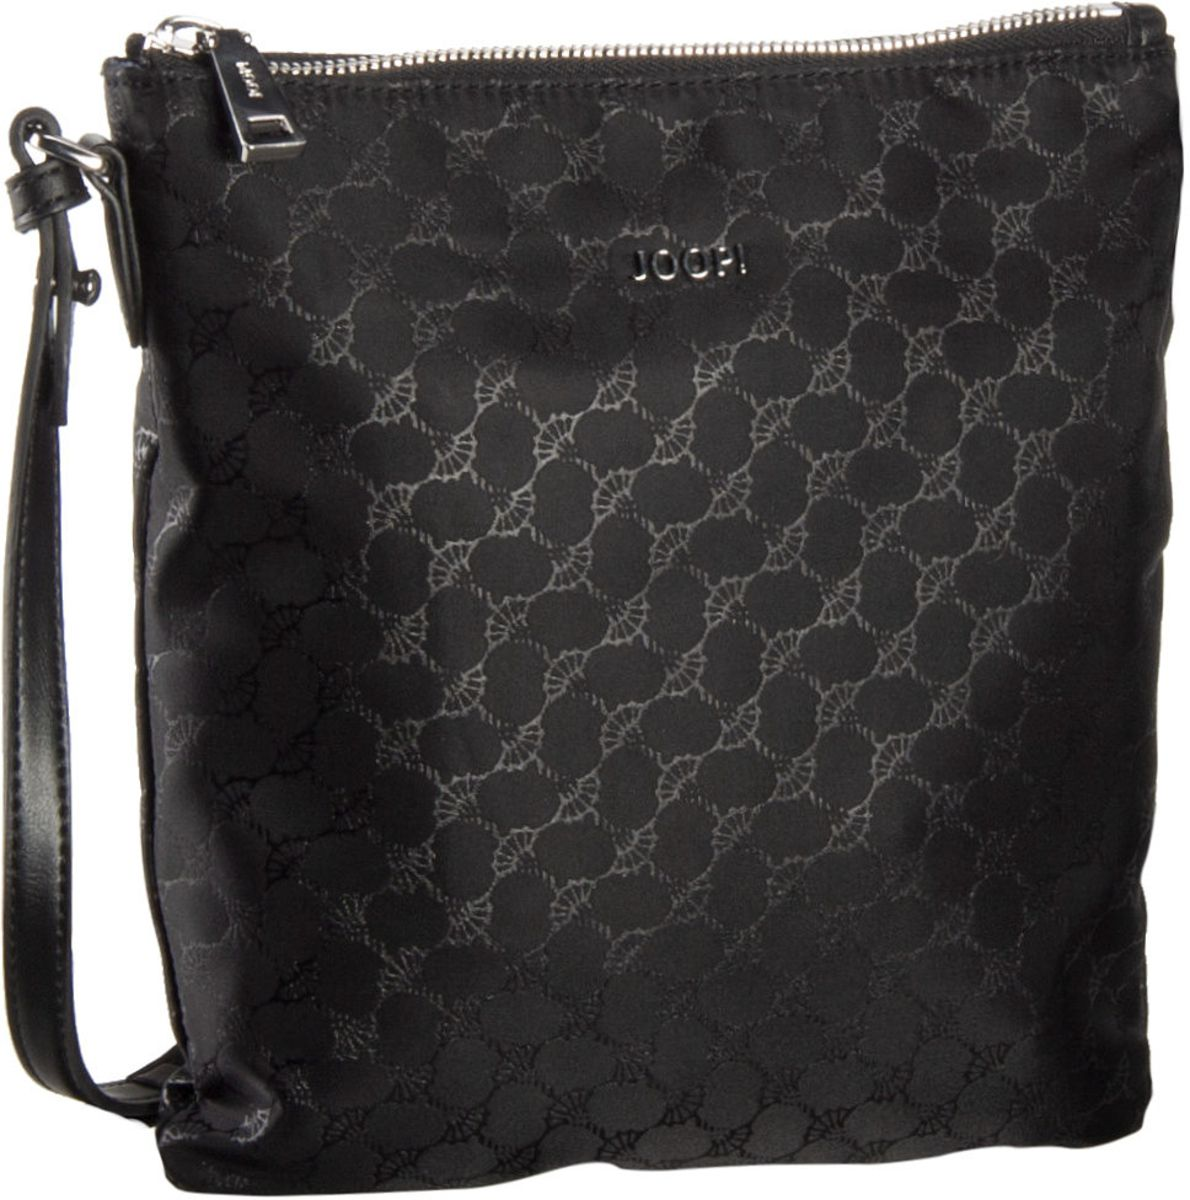 Joop Dia Nylon Cornflower Shoulderbag Black - Umhängetasche